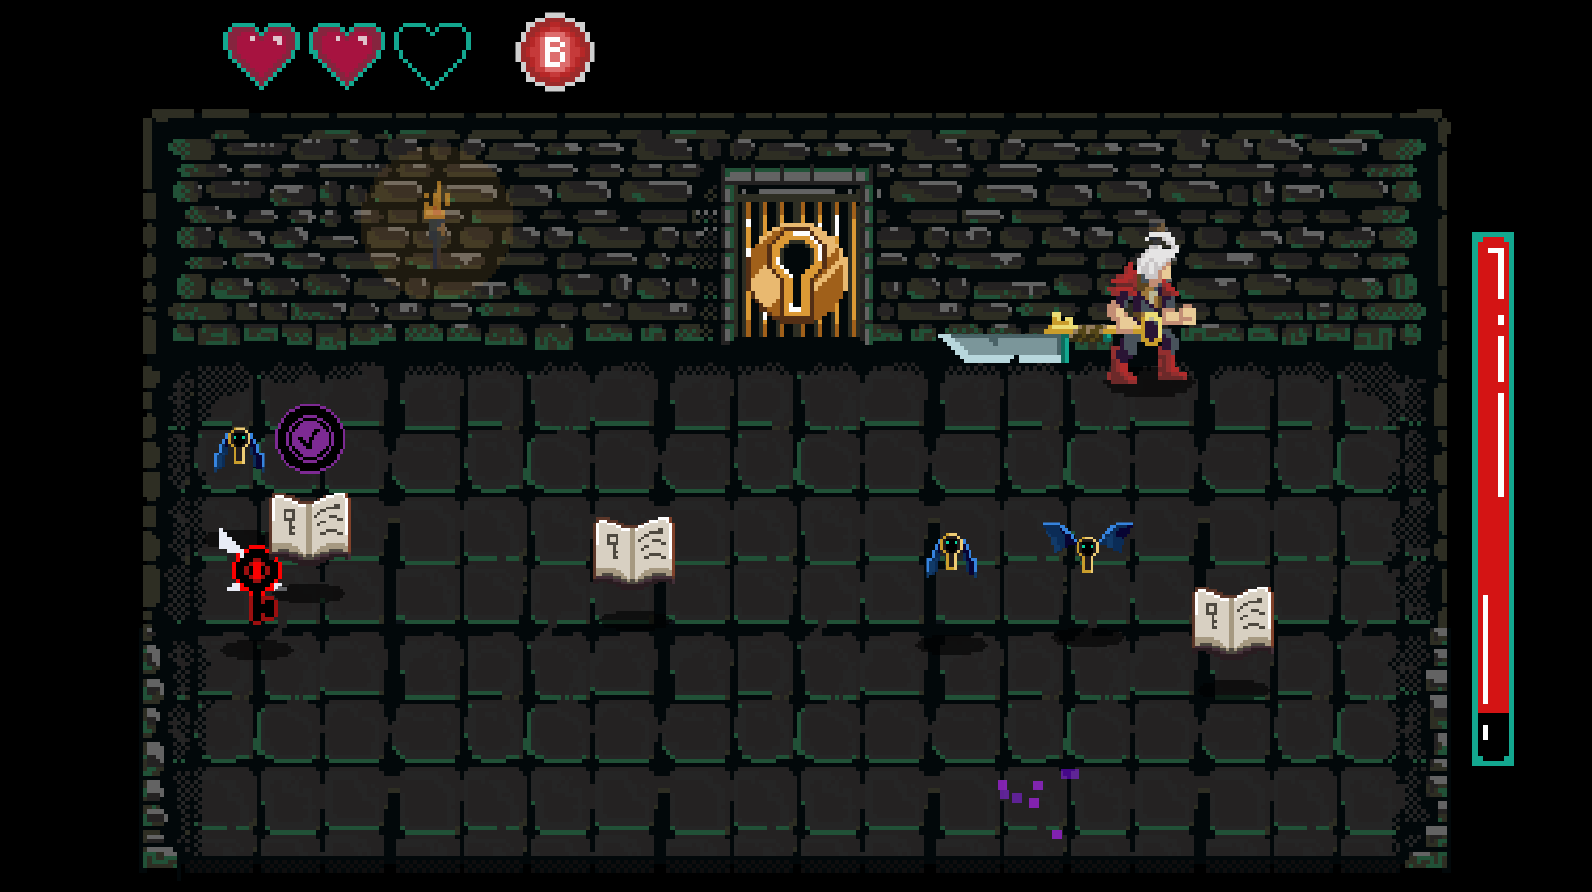 Shown above is Phase One of the final boss fight. Notice that for the boss fight the Boss Room changes color palette as well as the final door. This was to help strengthen the idea that this is a boss instead of a normal enemy room.